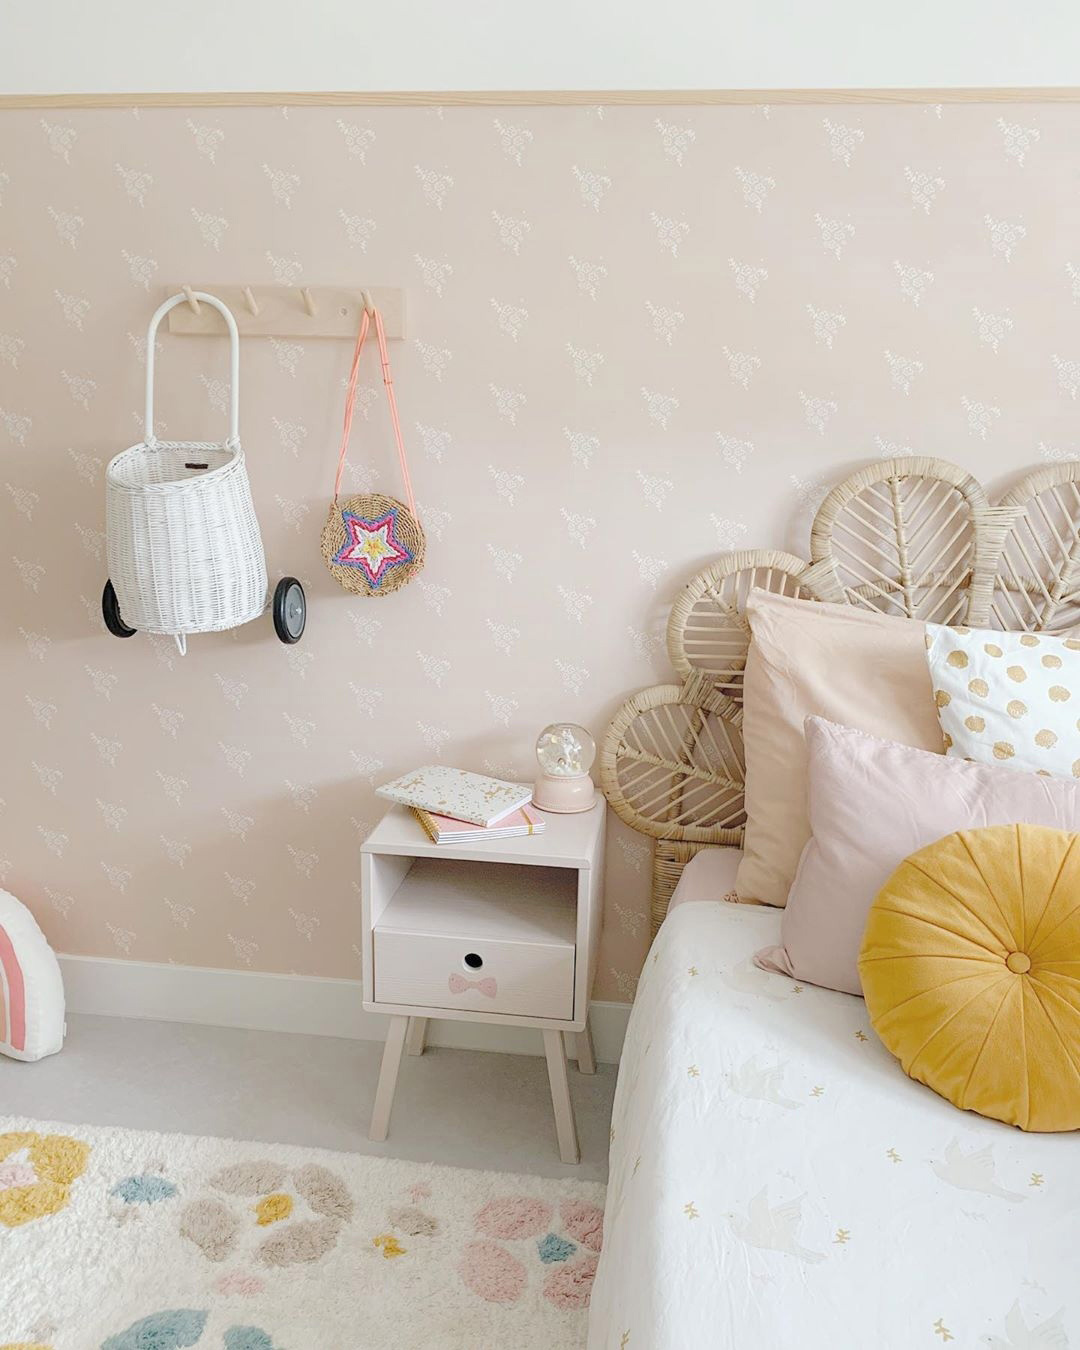 neutral-and-pastel-Wallpaper 10 Cute Ways to Use Removable Wallpaper for Your Kid's Bedroom